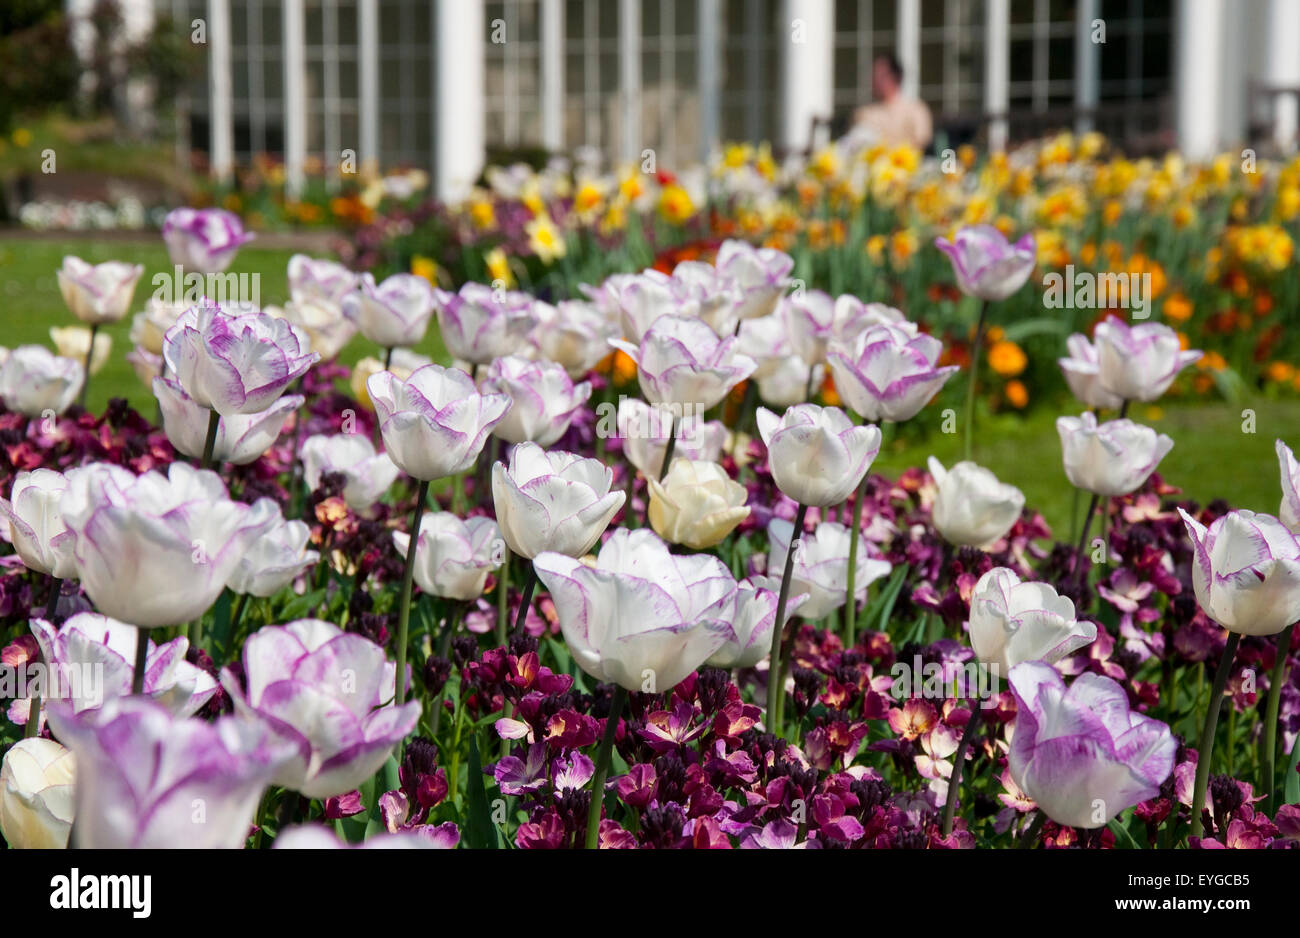 Spring flowers in the formal gardens at wollaton hall stock photo spring flowers in the formal gardens at wollaton hall nottinghamshire england uk mightylinksfo